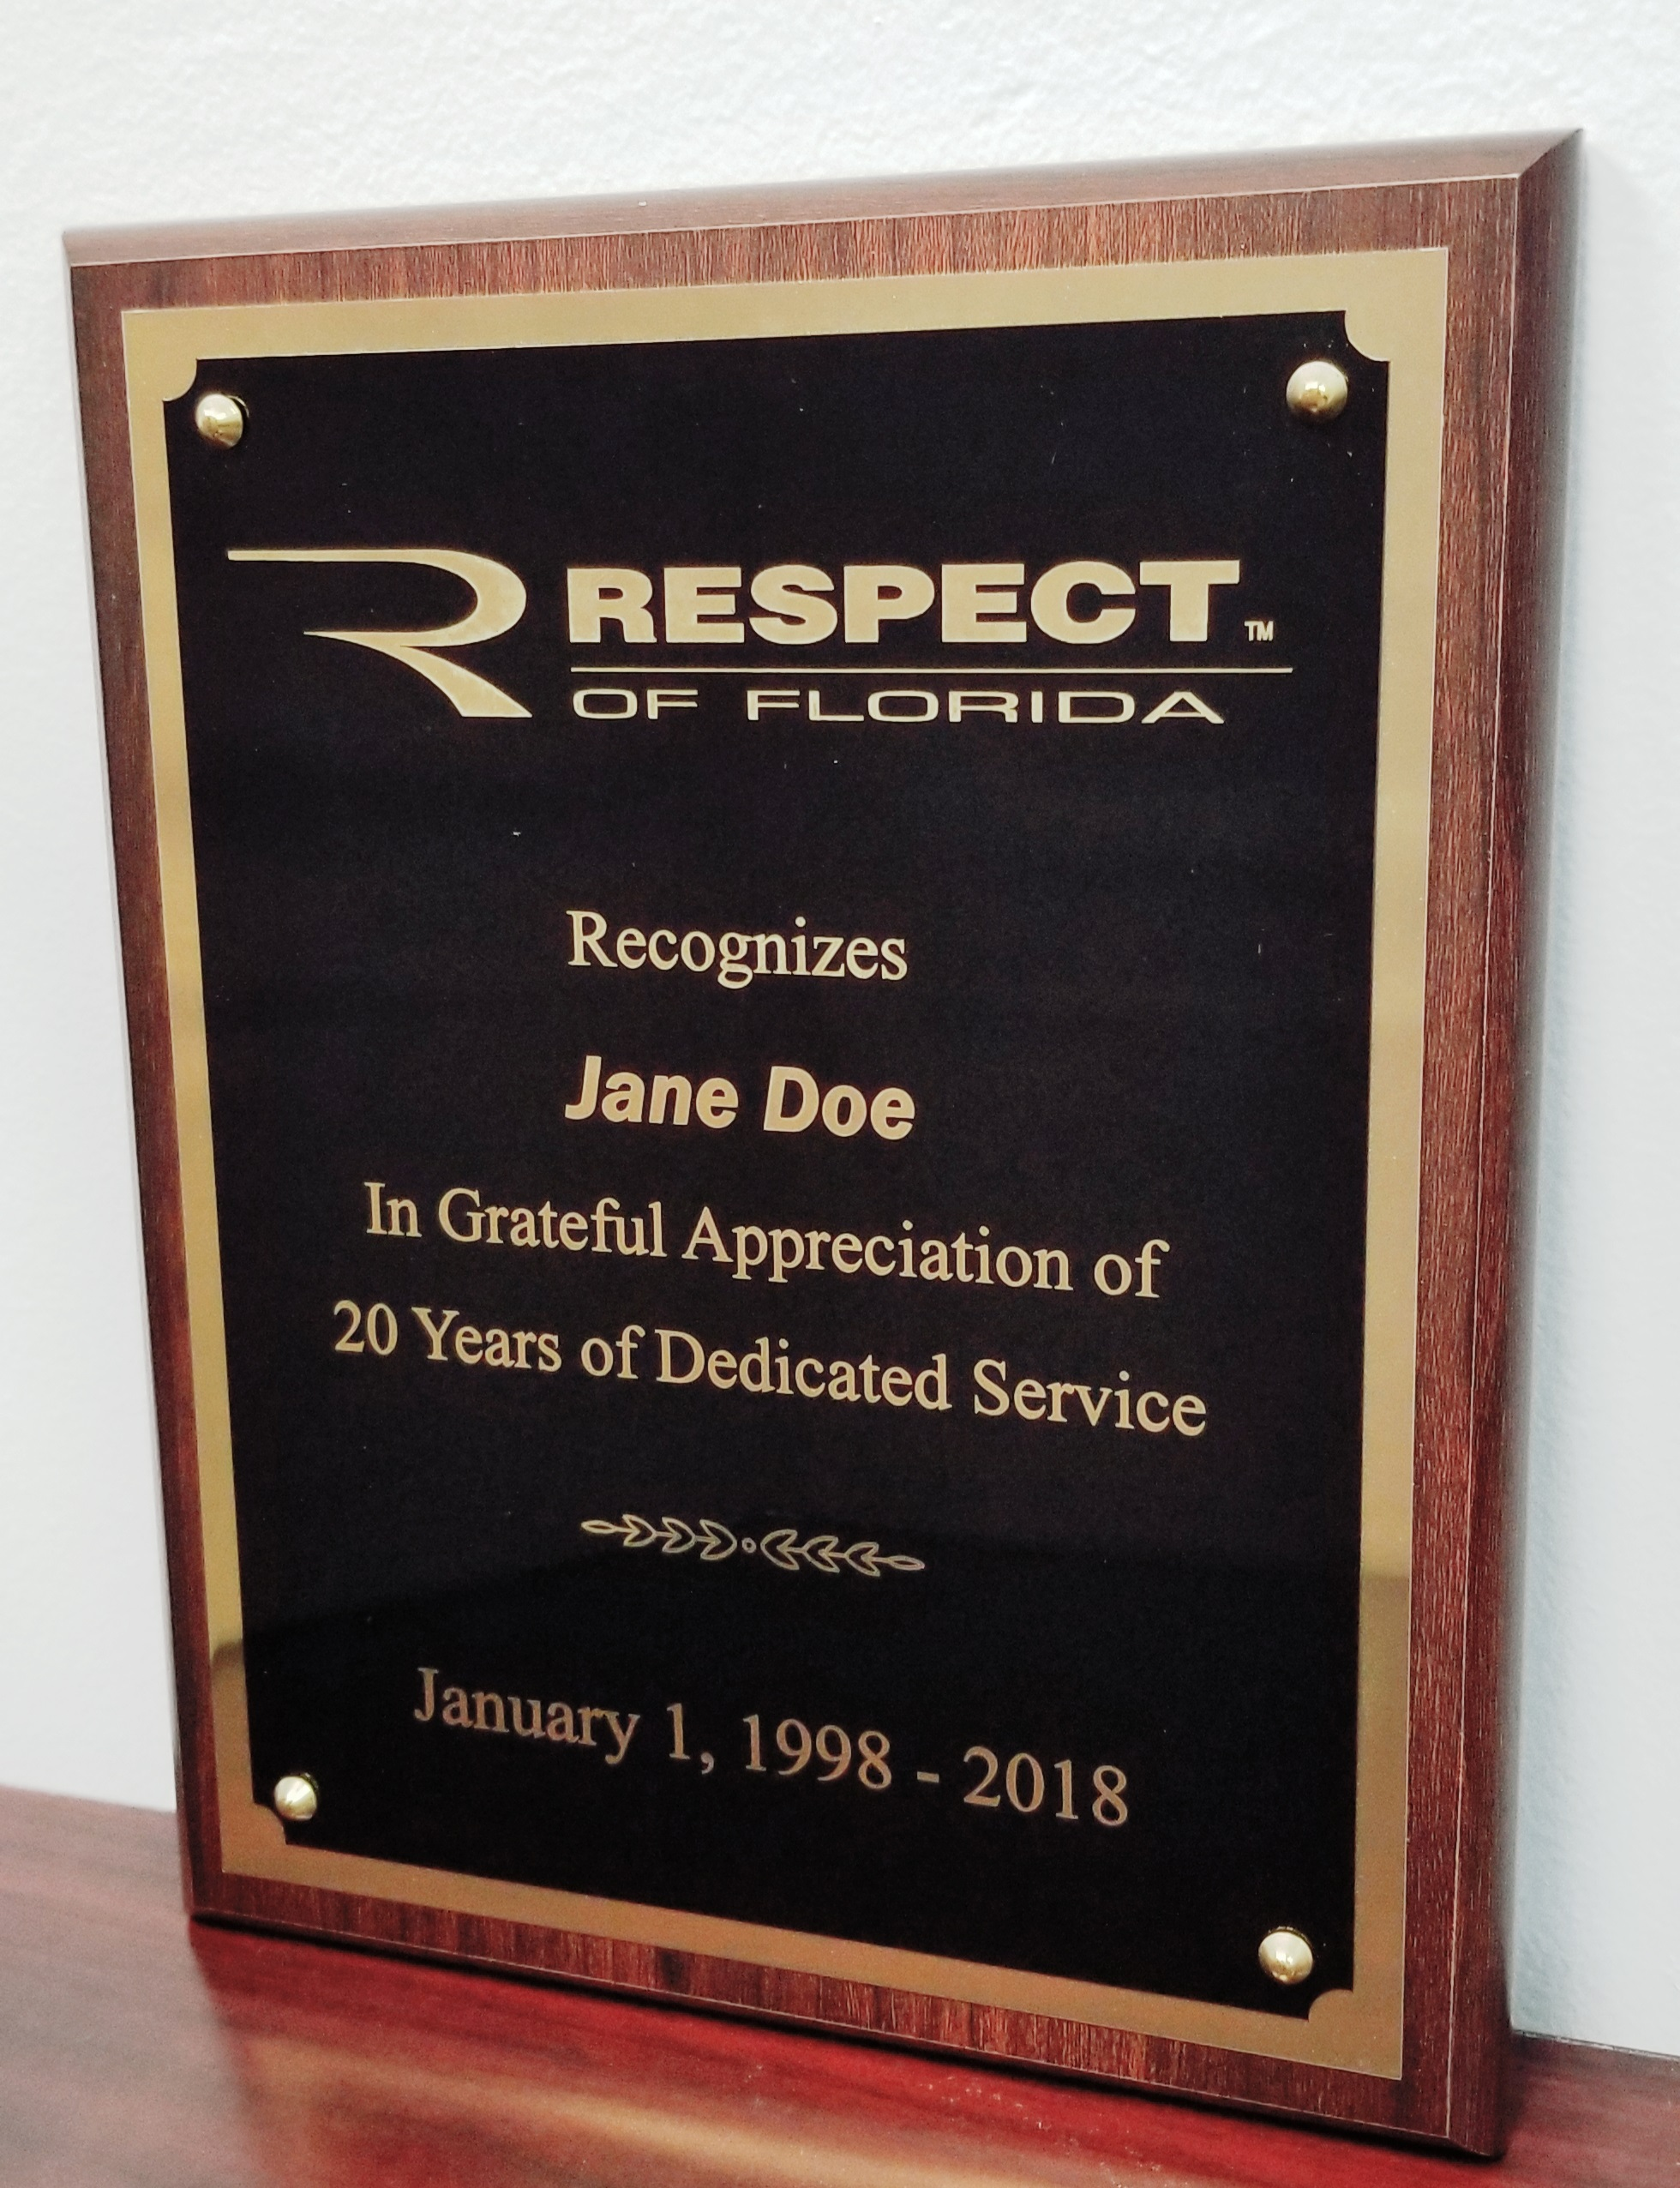 4 x 6 in. Award Plaque - Non-Contract Item